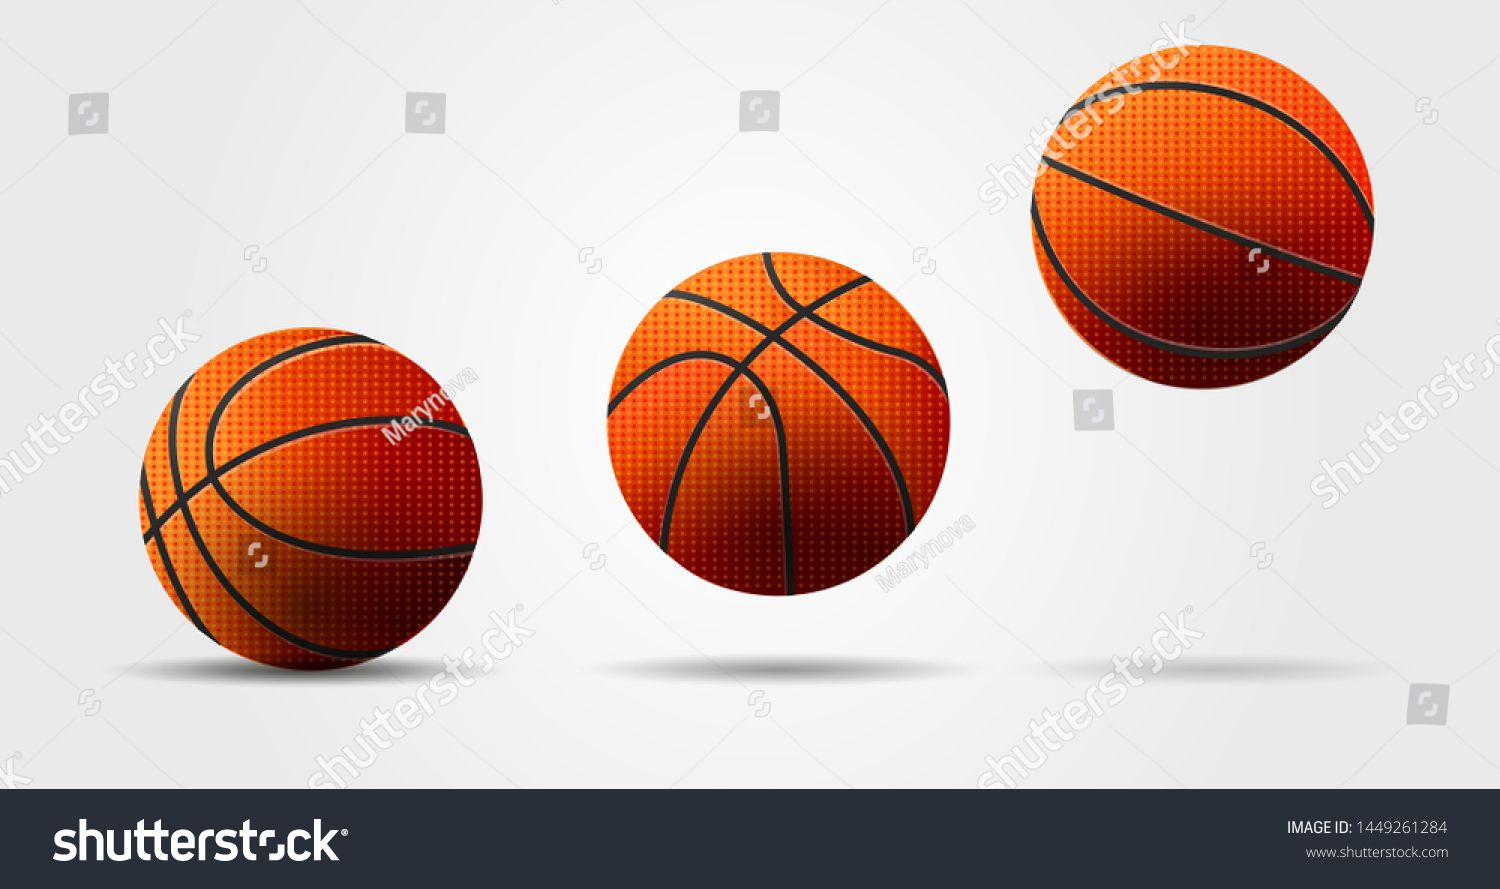 Basketball balls vector illustration, realistic cartoon graphic, balls jumping, view from different sides #Ad , #AD, #illustration#realistic#vector#Basketball